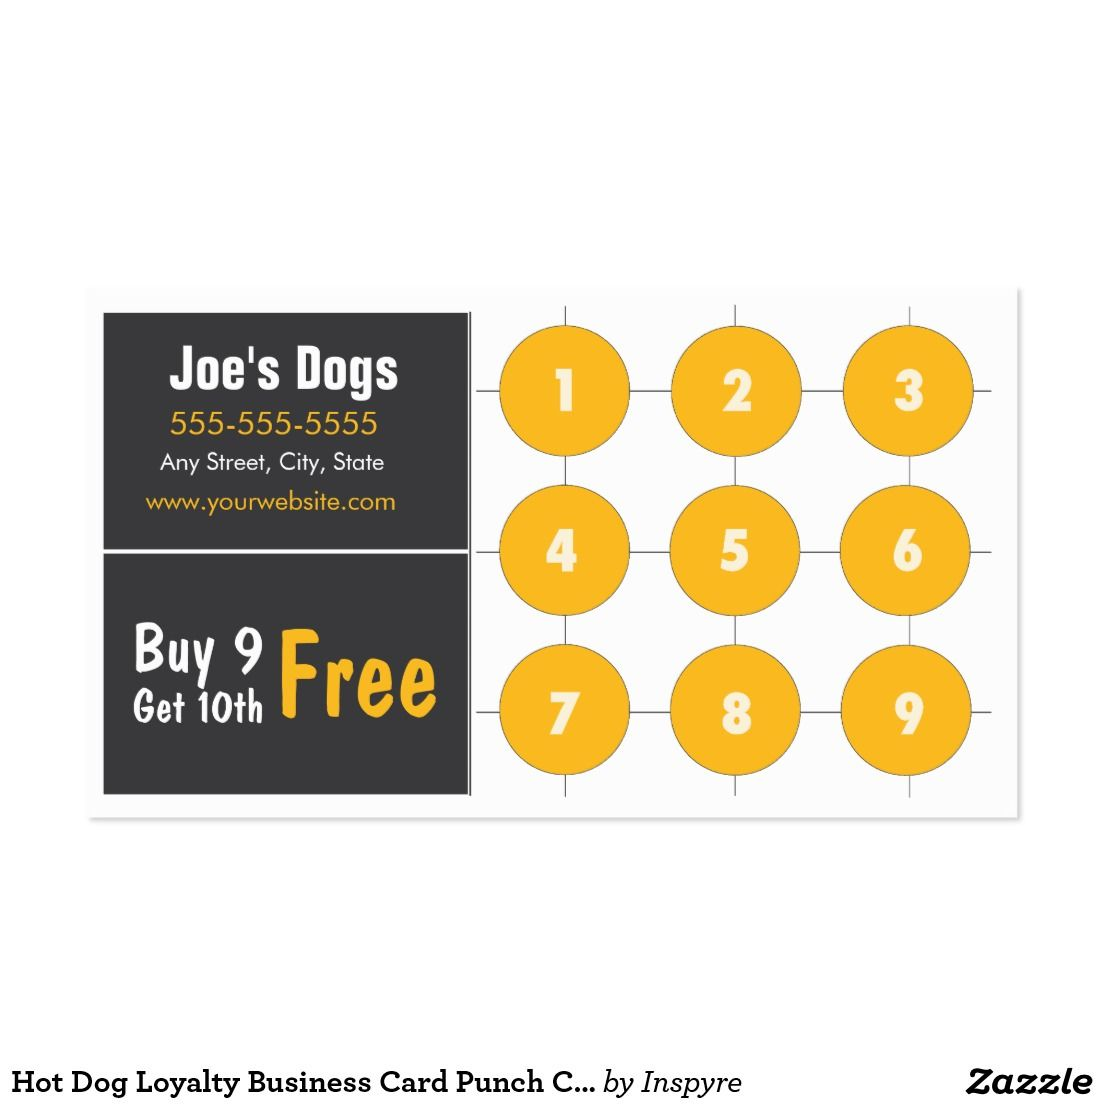 Hot Dog Loyalty Business Card Punch Card | Business Cards, Logos ...